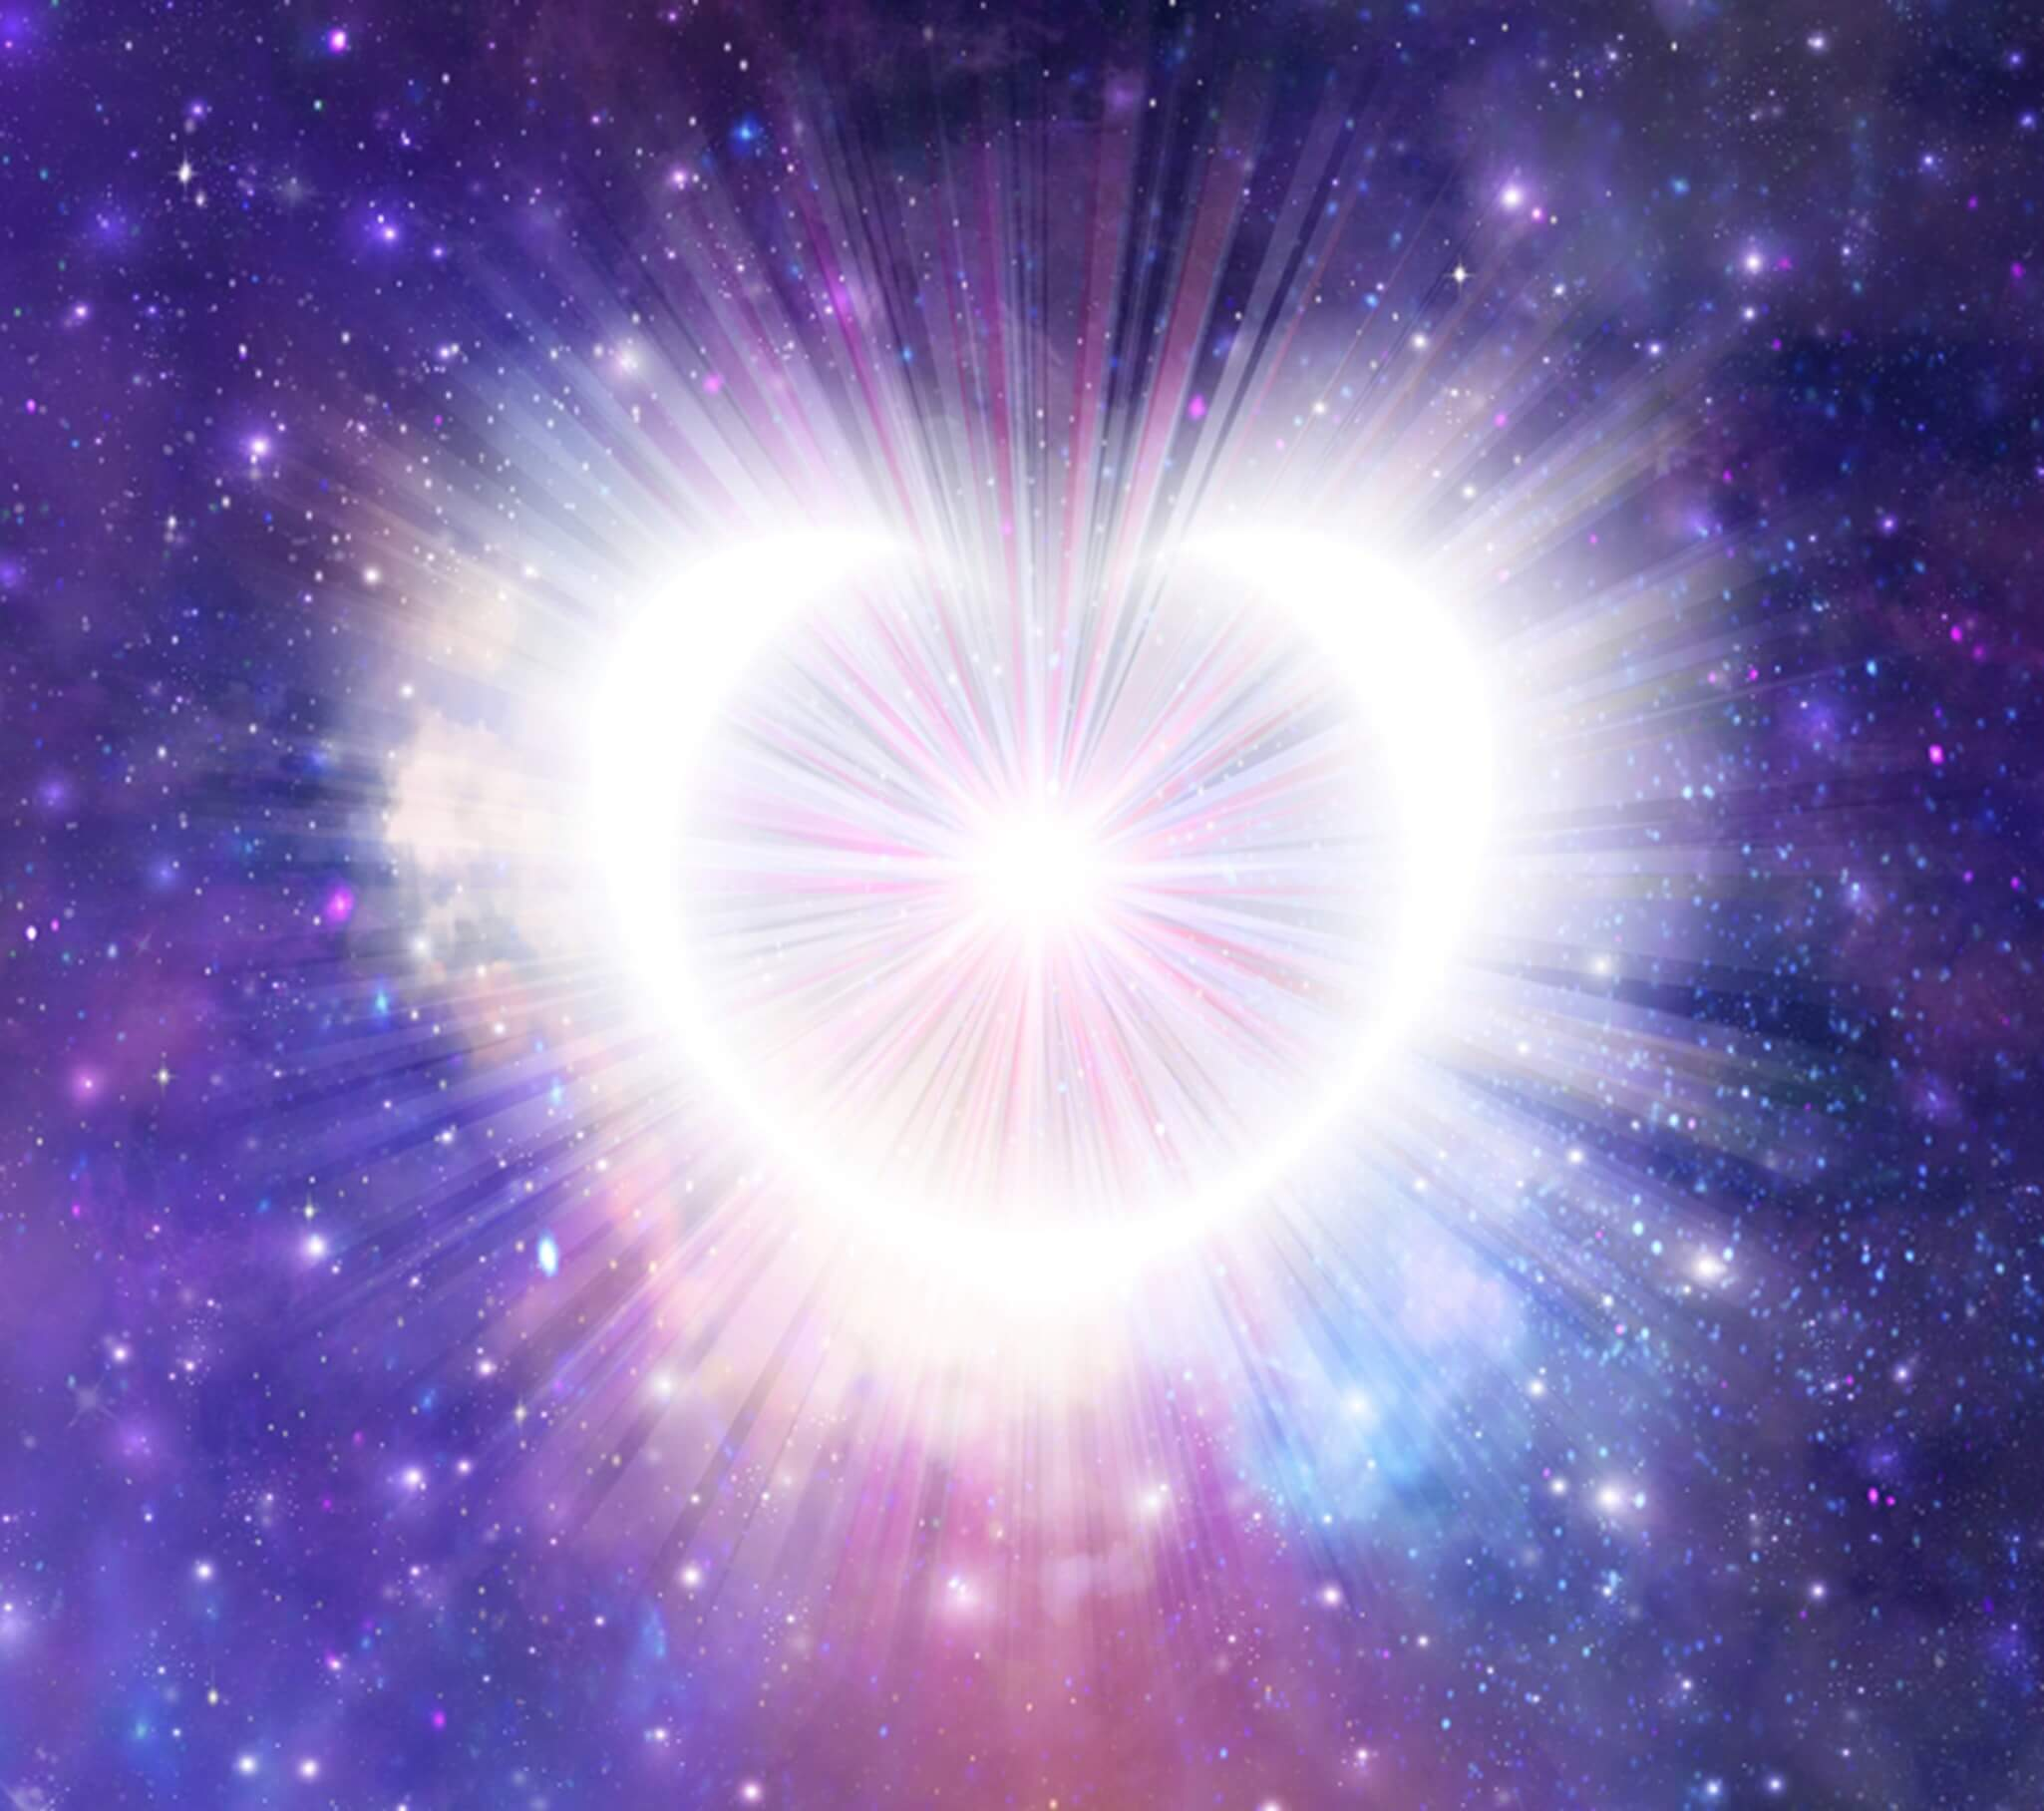 The heart shown as a galaxy in space